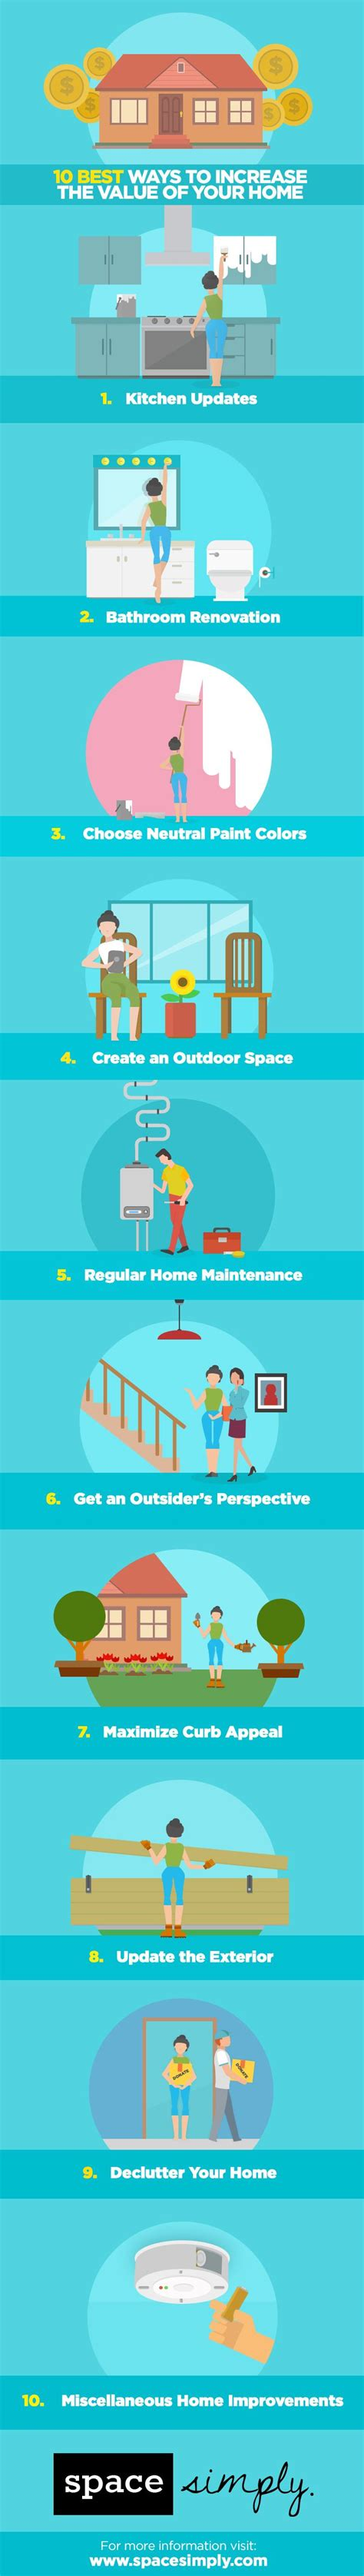 10 best ways to increase the value of your home